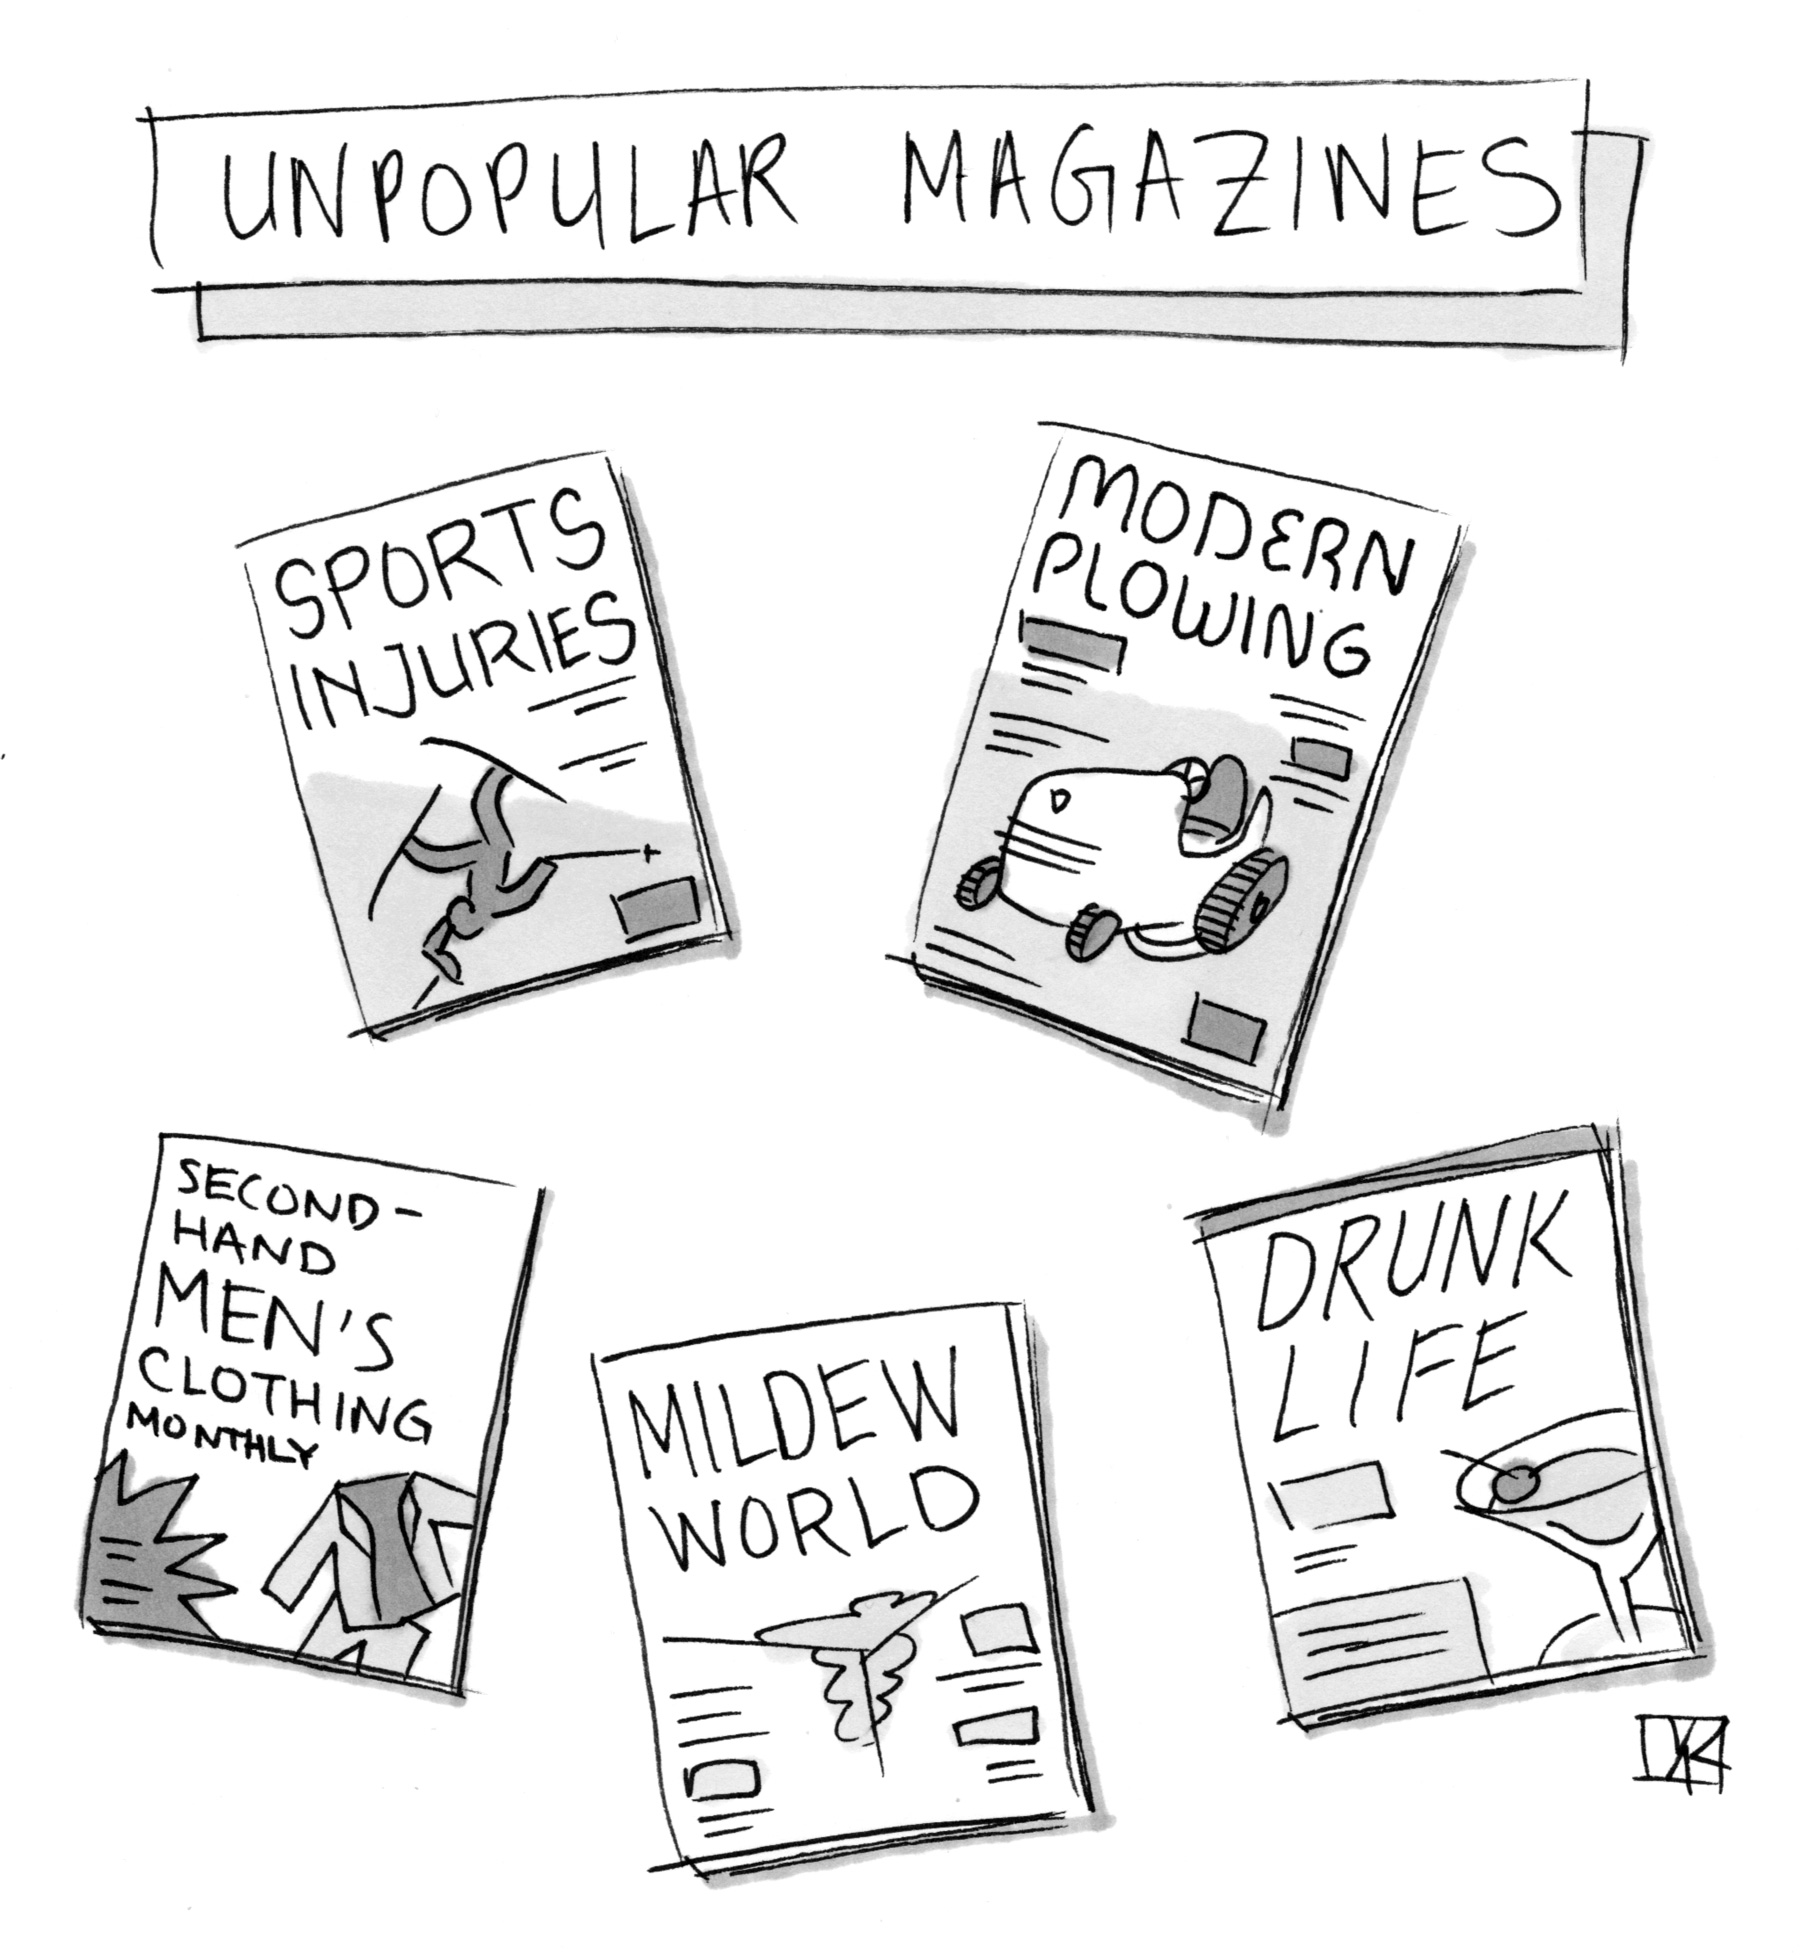 (Unpopular Magazines: Sports Injuries, Modern Plowing, Second-Hand Men's Clothing Monthly, Mildew World, Drunk Life.)